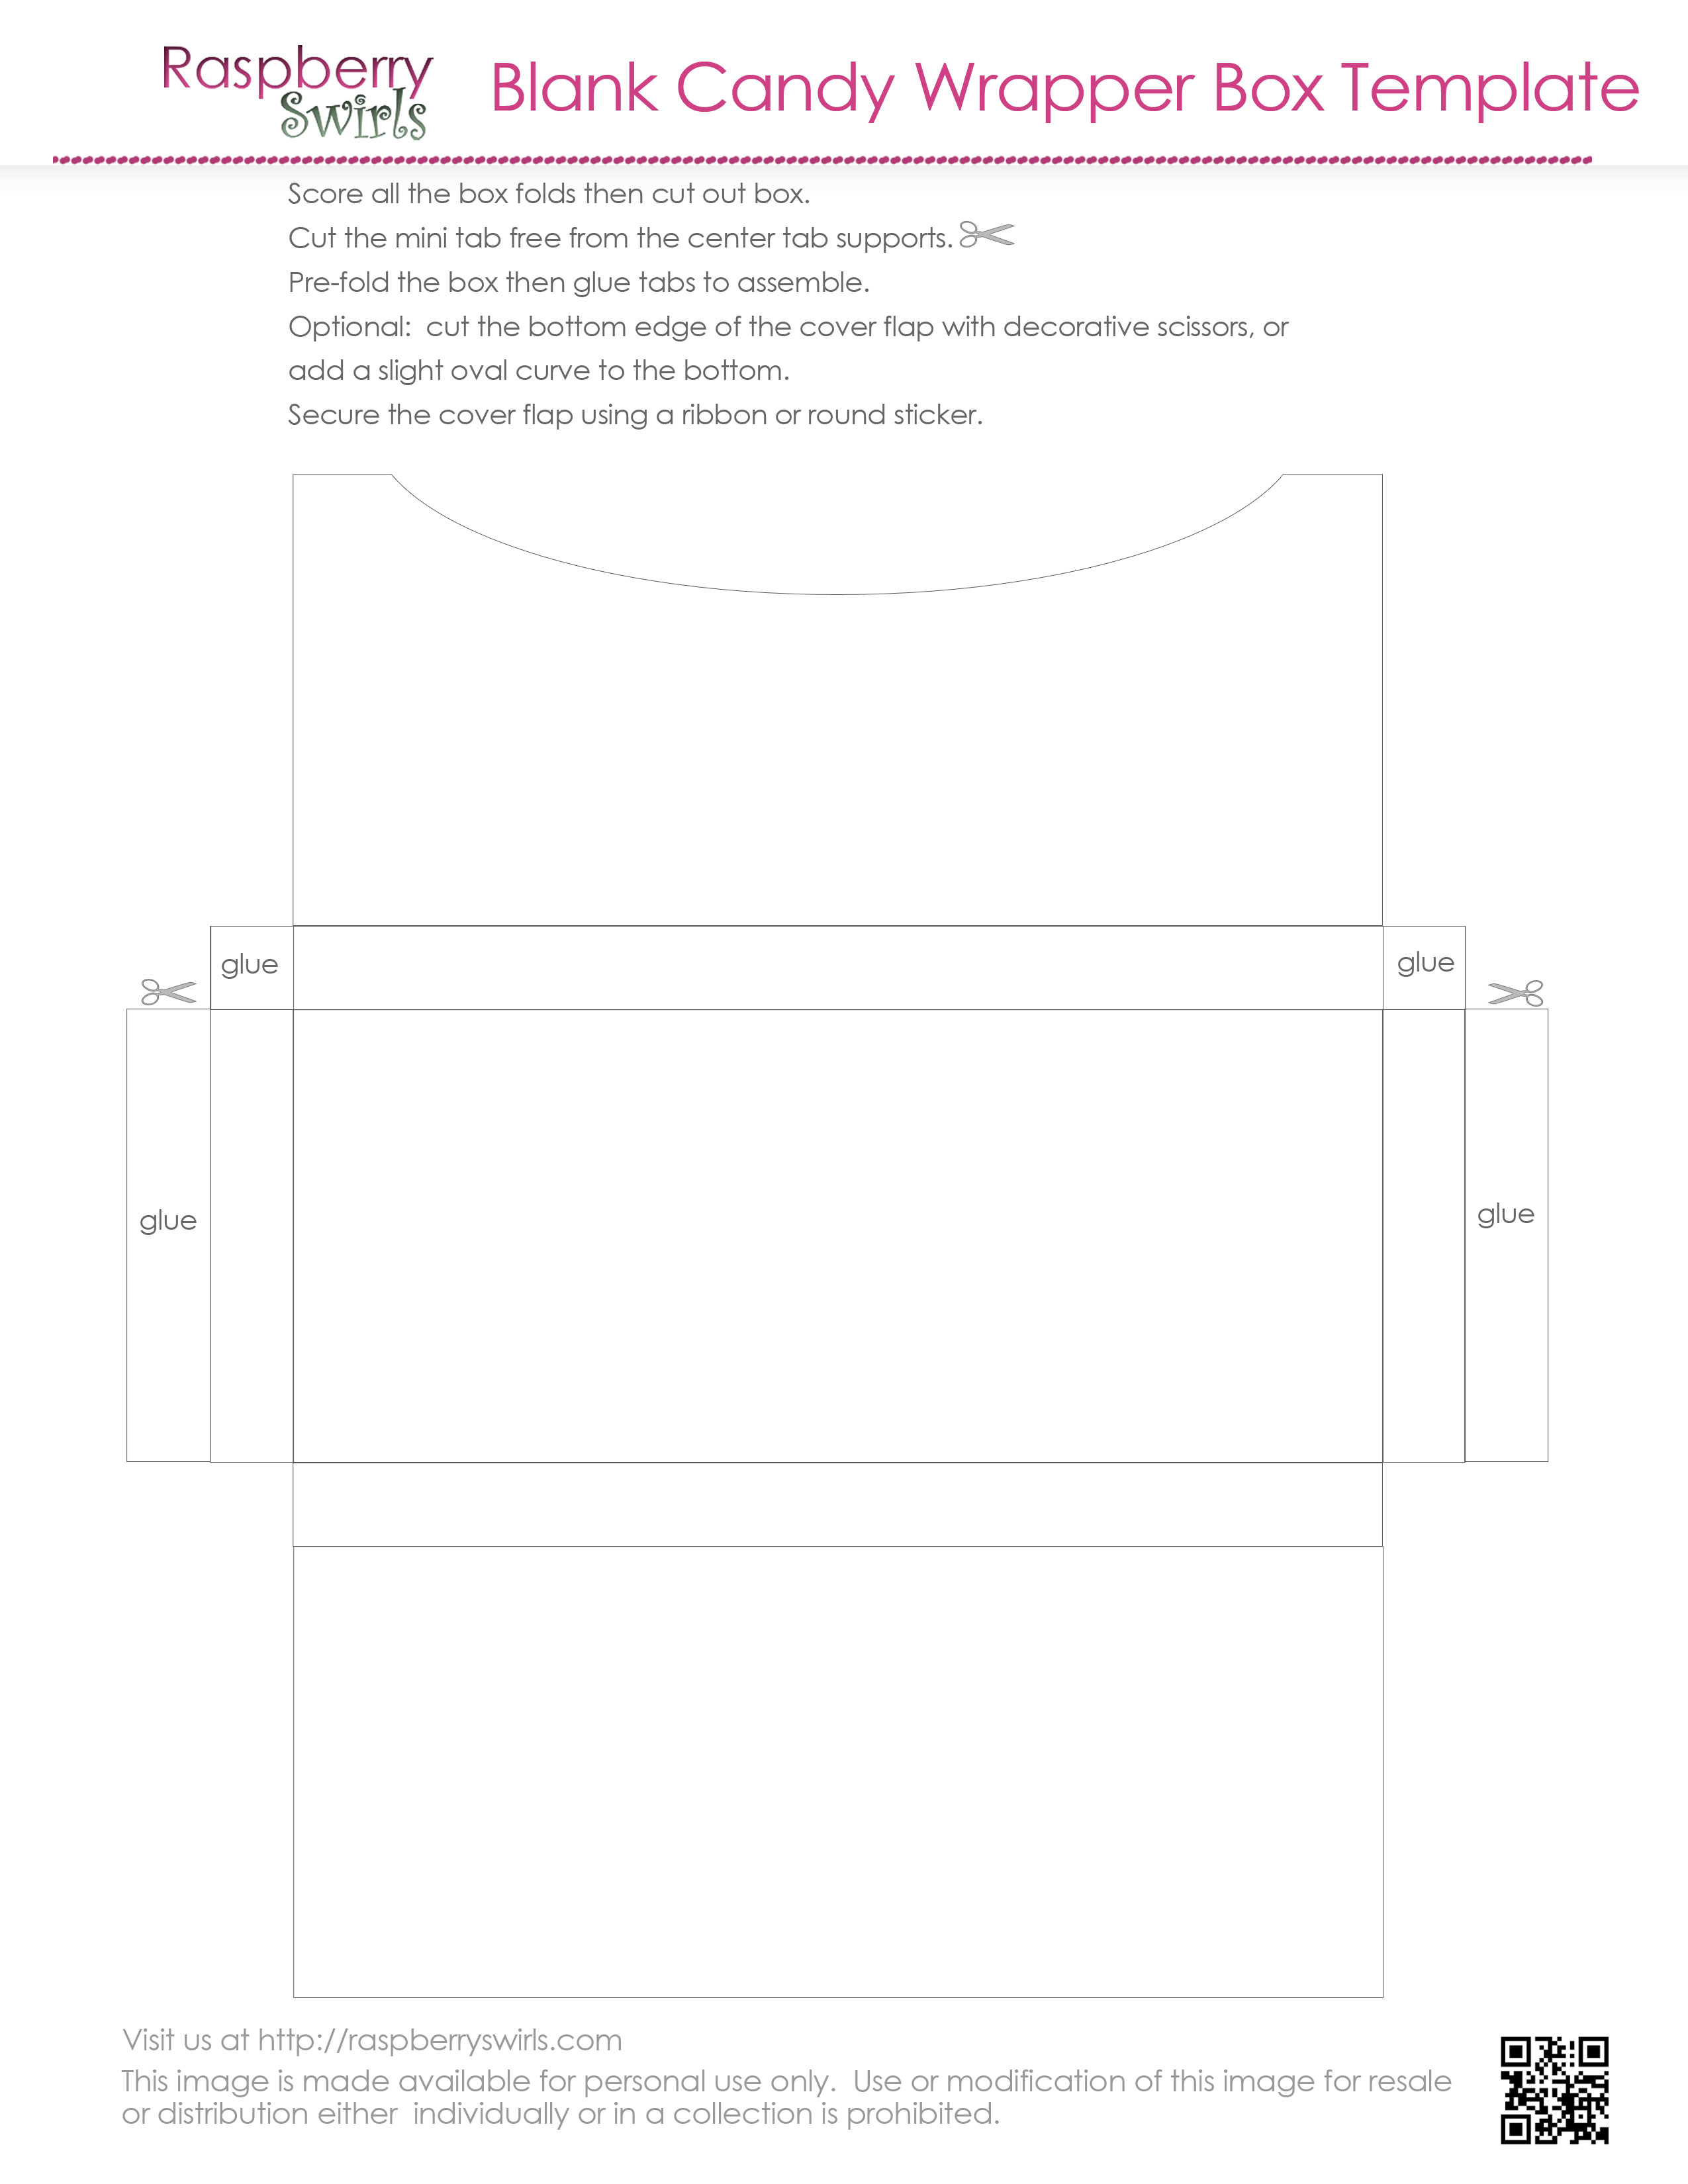 7 best images of free printable candy box templates free for Free candy bar wrapper template